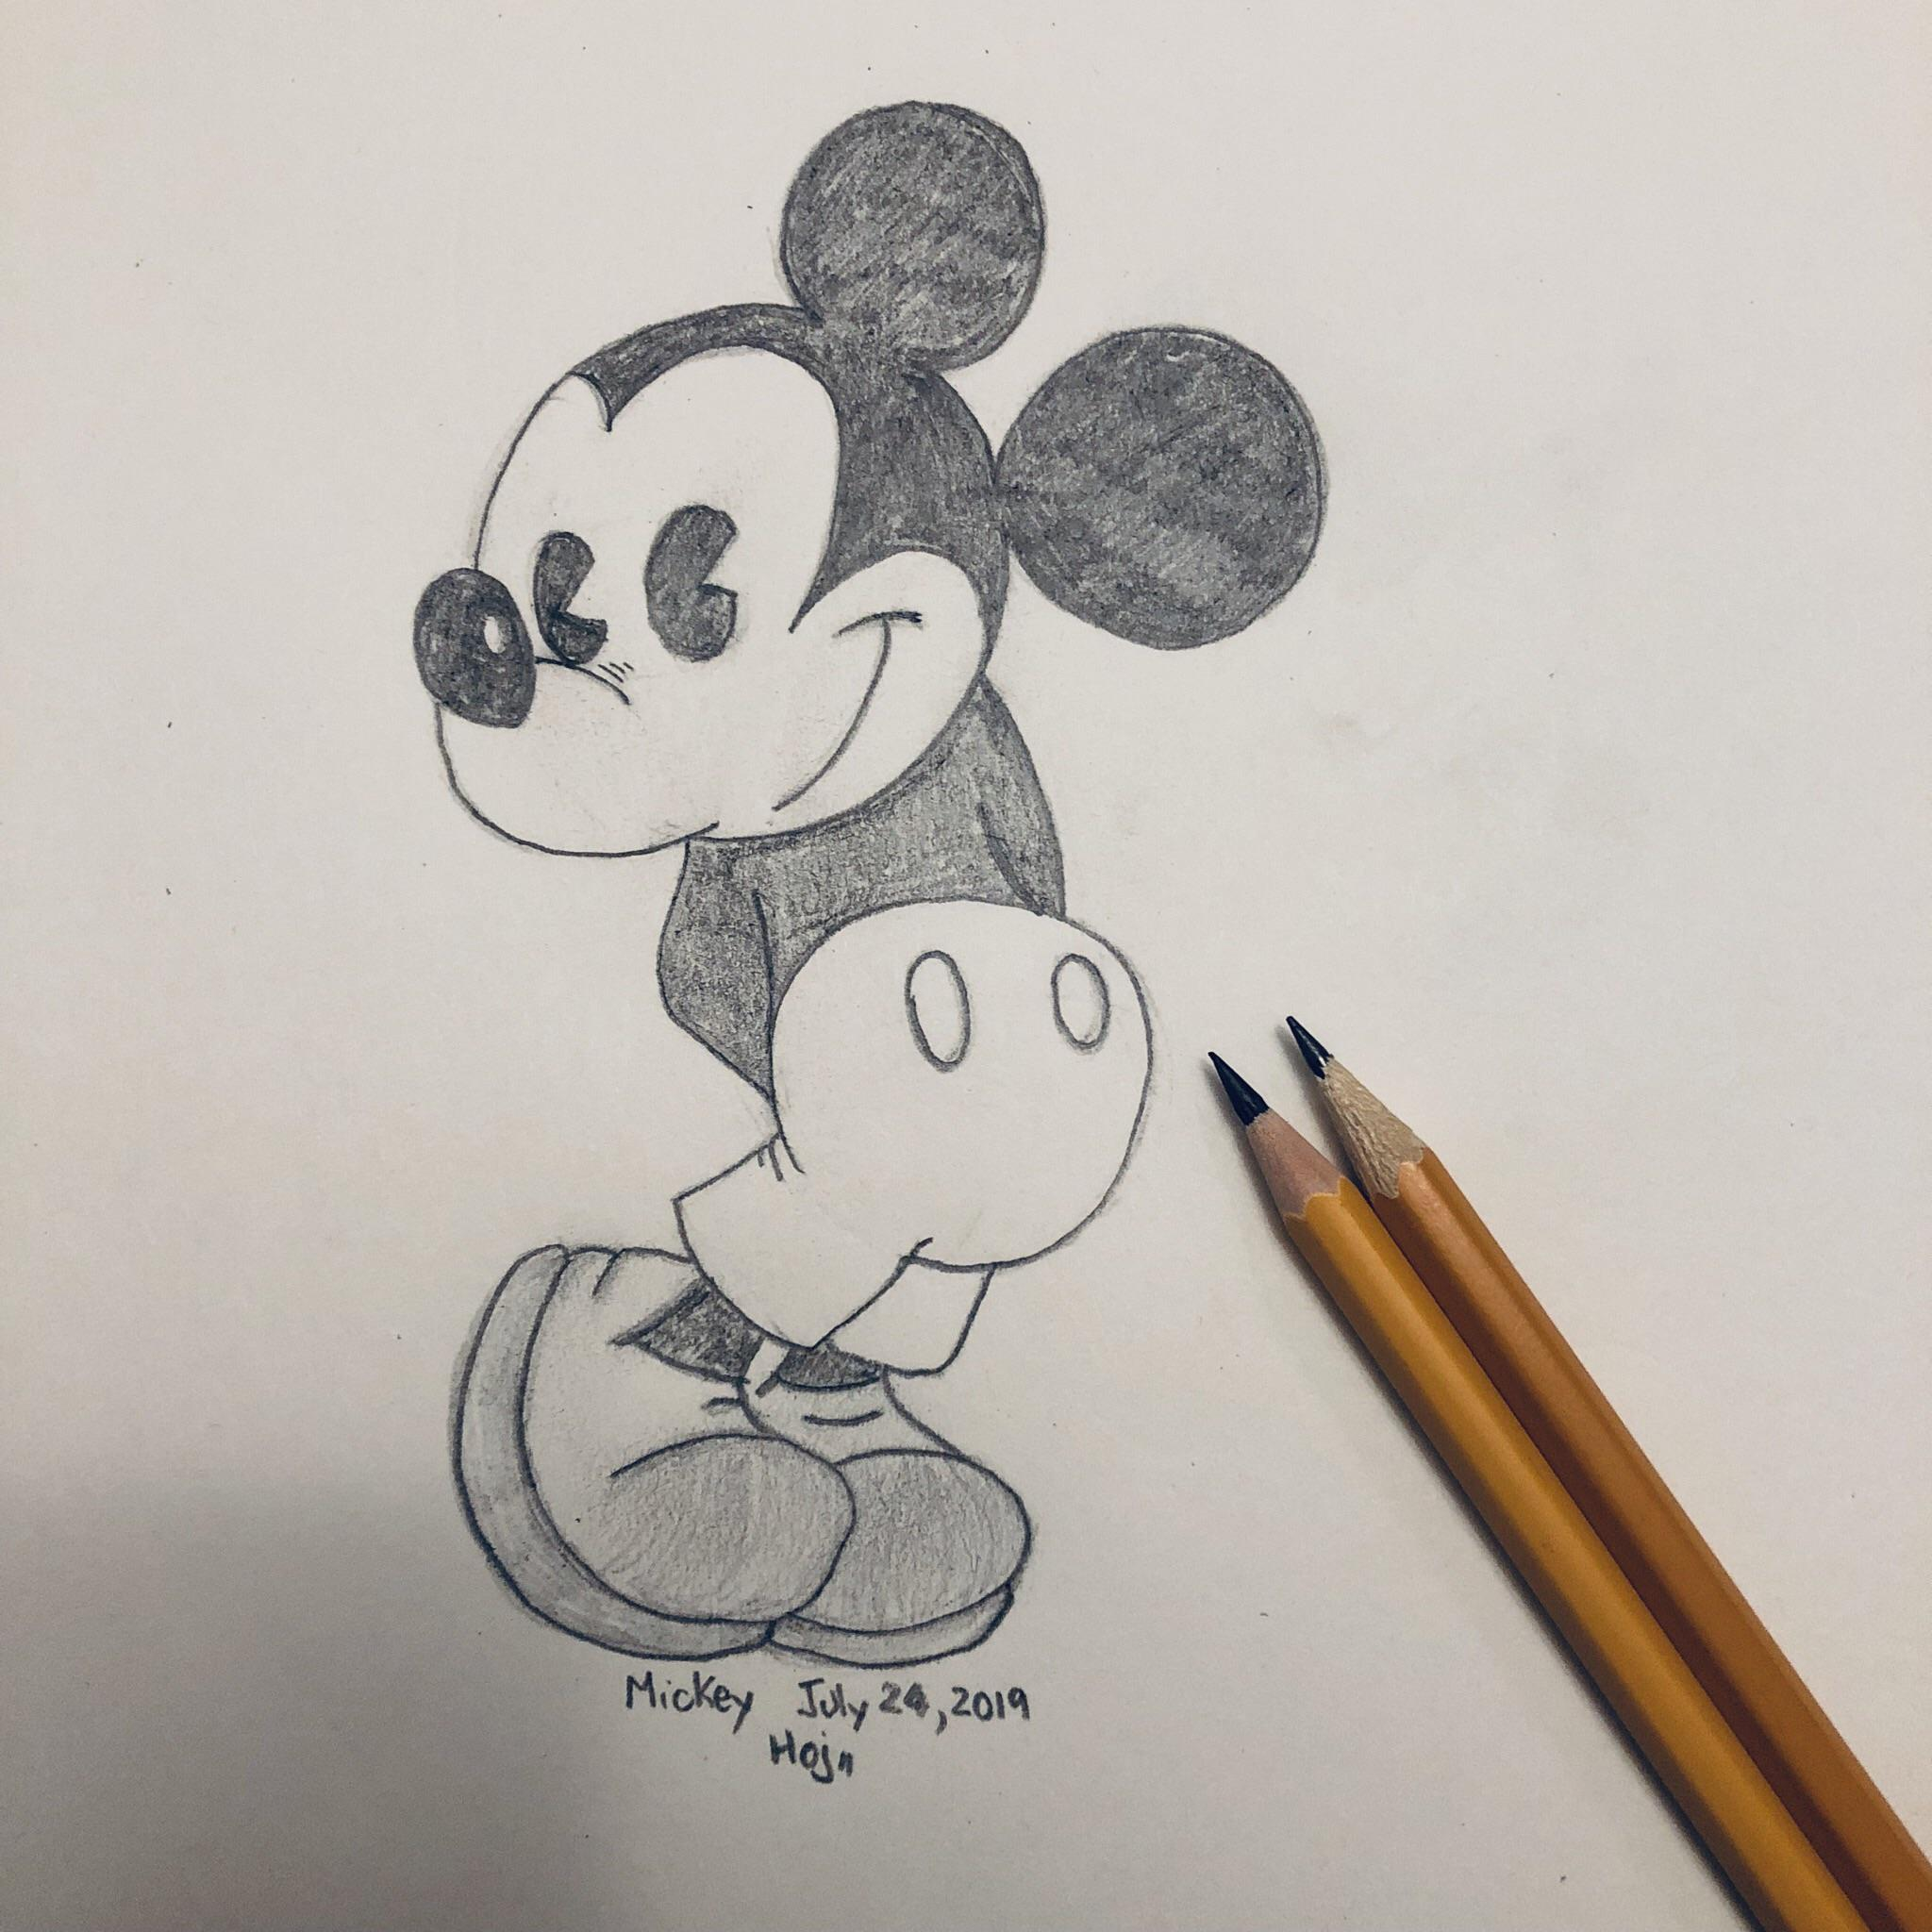 Disney Mickey Mouse More Of My Pencil Sketches Of My Kids Favourite Cartoon Characters Sketches